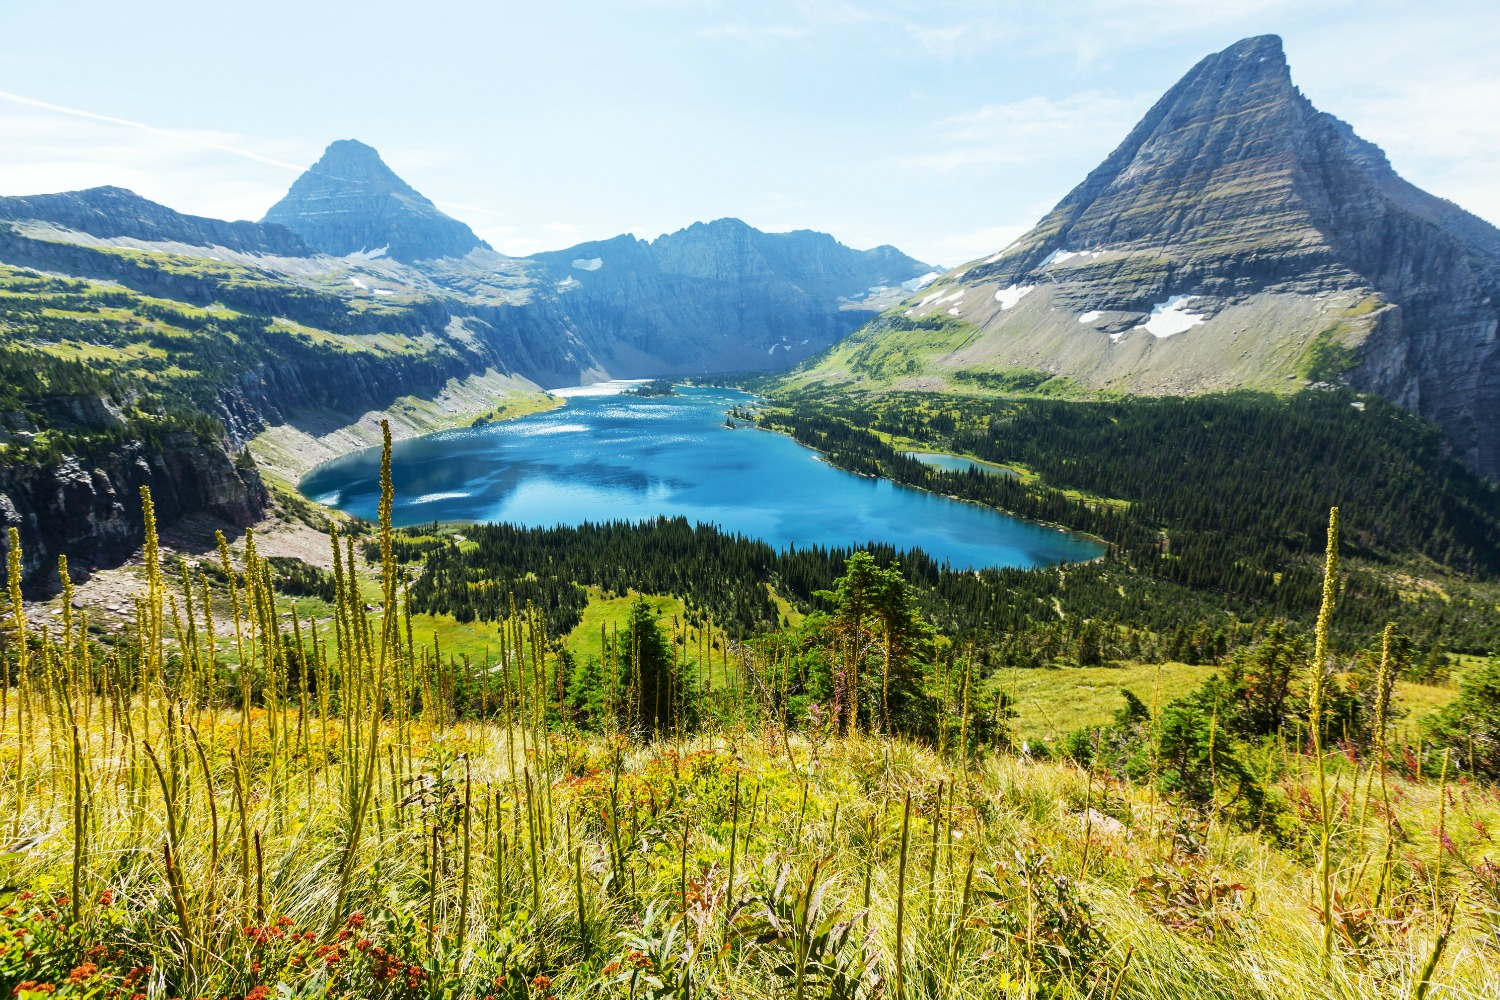 Most of the glaciers at Glacier National Park are gone. Photo Shutterstock.